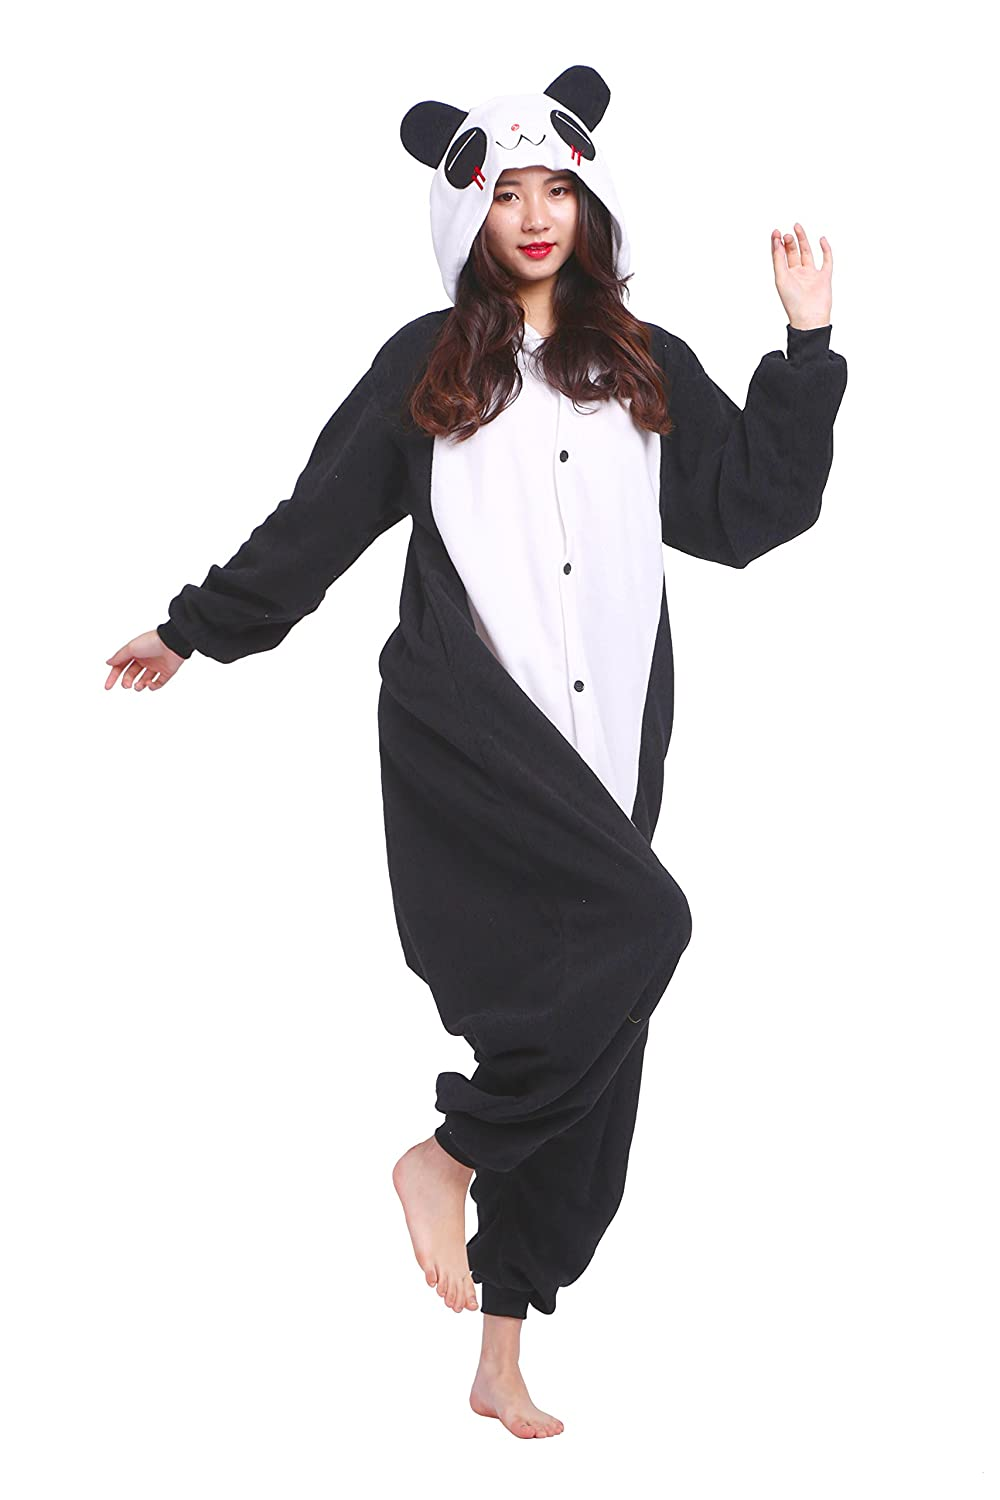 Amazon.com: Magicmode Unisex Cartoon Cosplay Costumes Adults Anime Onesie Pajamas Sleepwear: Clothing